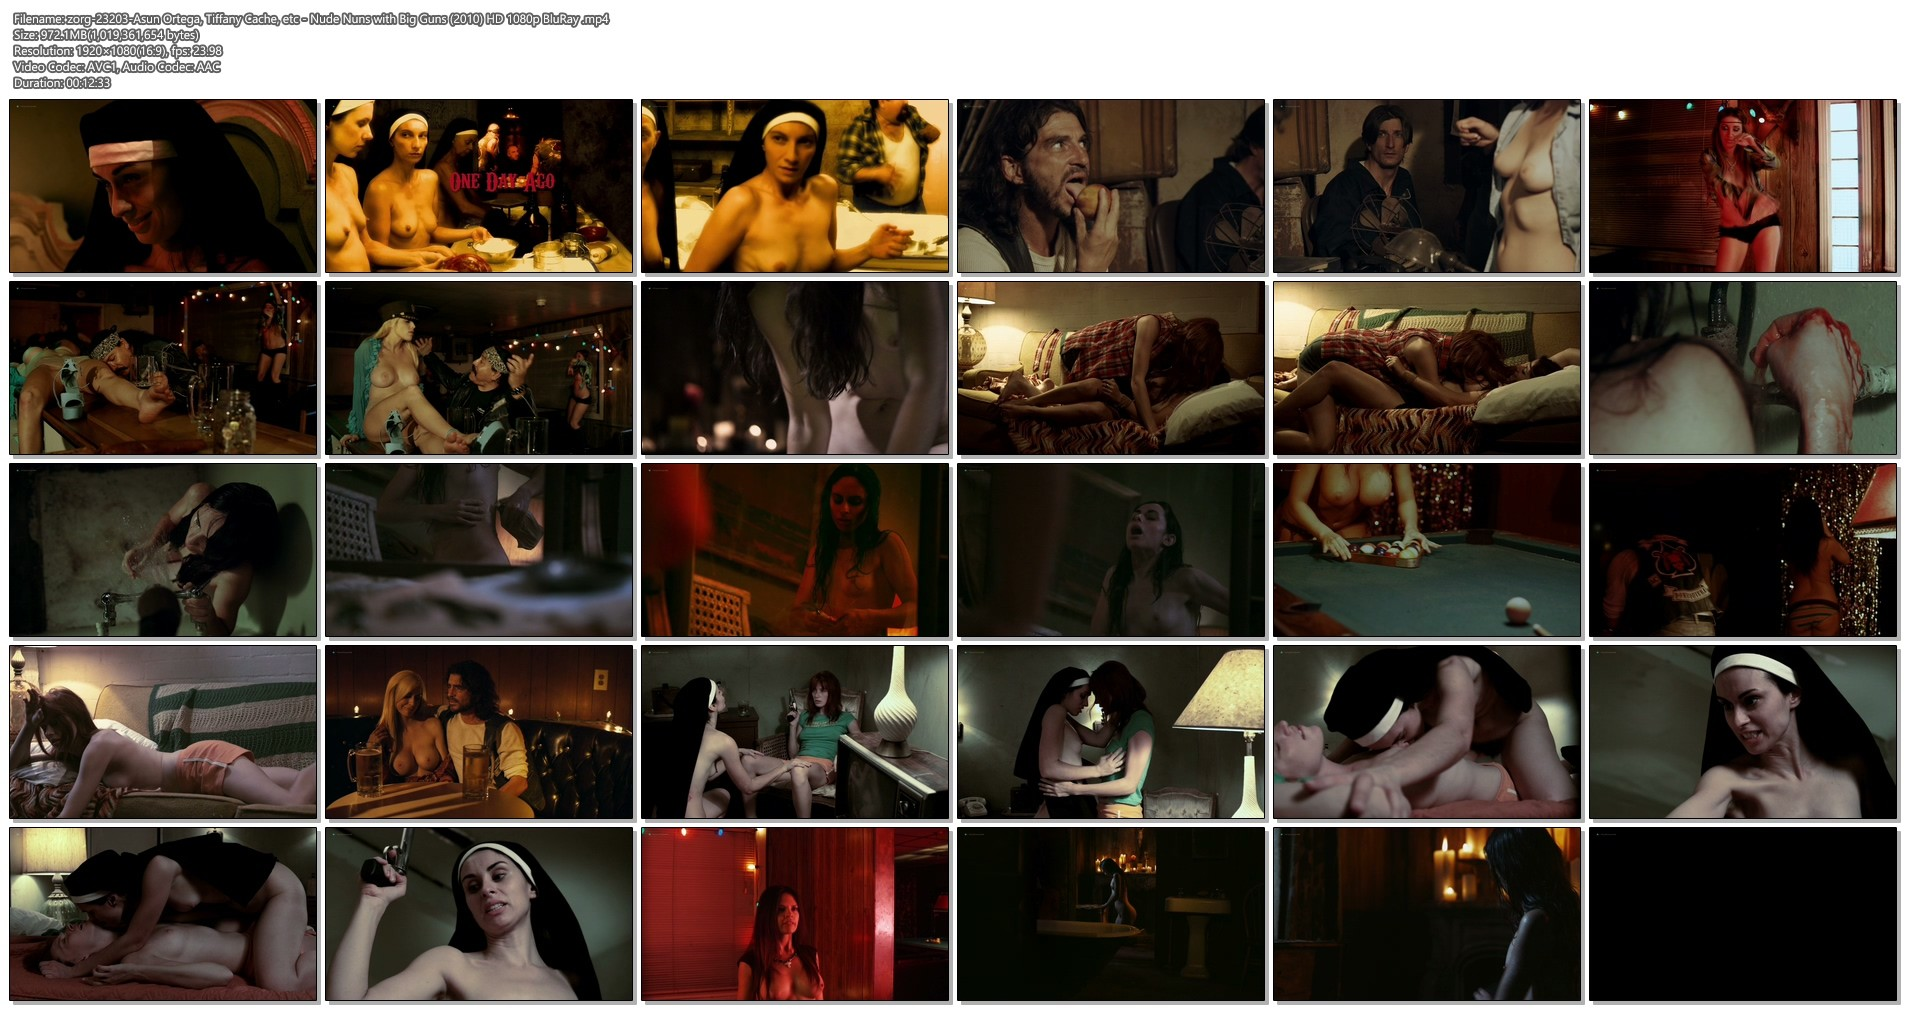 Asun Ortega nude Tiffany Cache and others nude full frontal and sex - Nude Nuns with Big Guns (2010) HD 1080p BluRay (1)